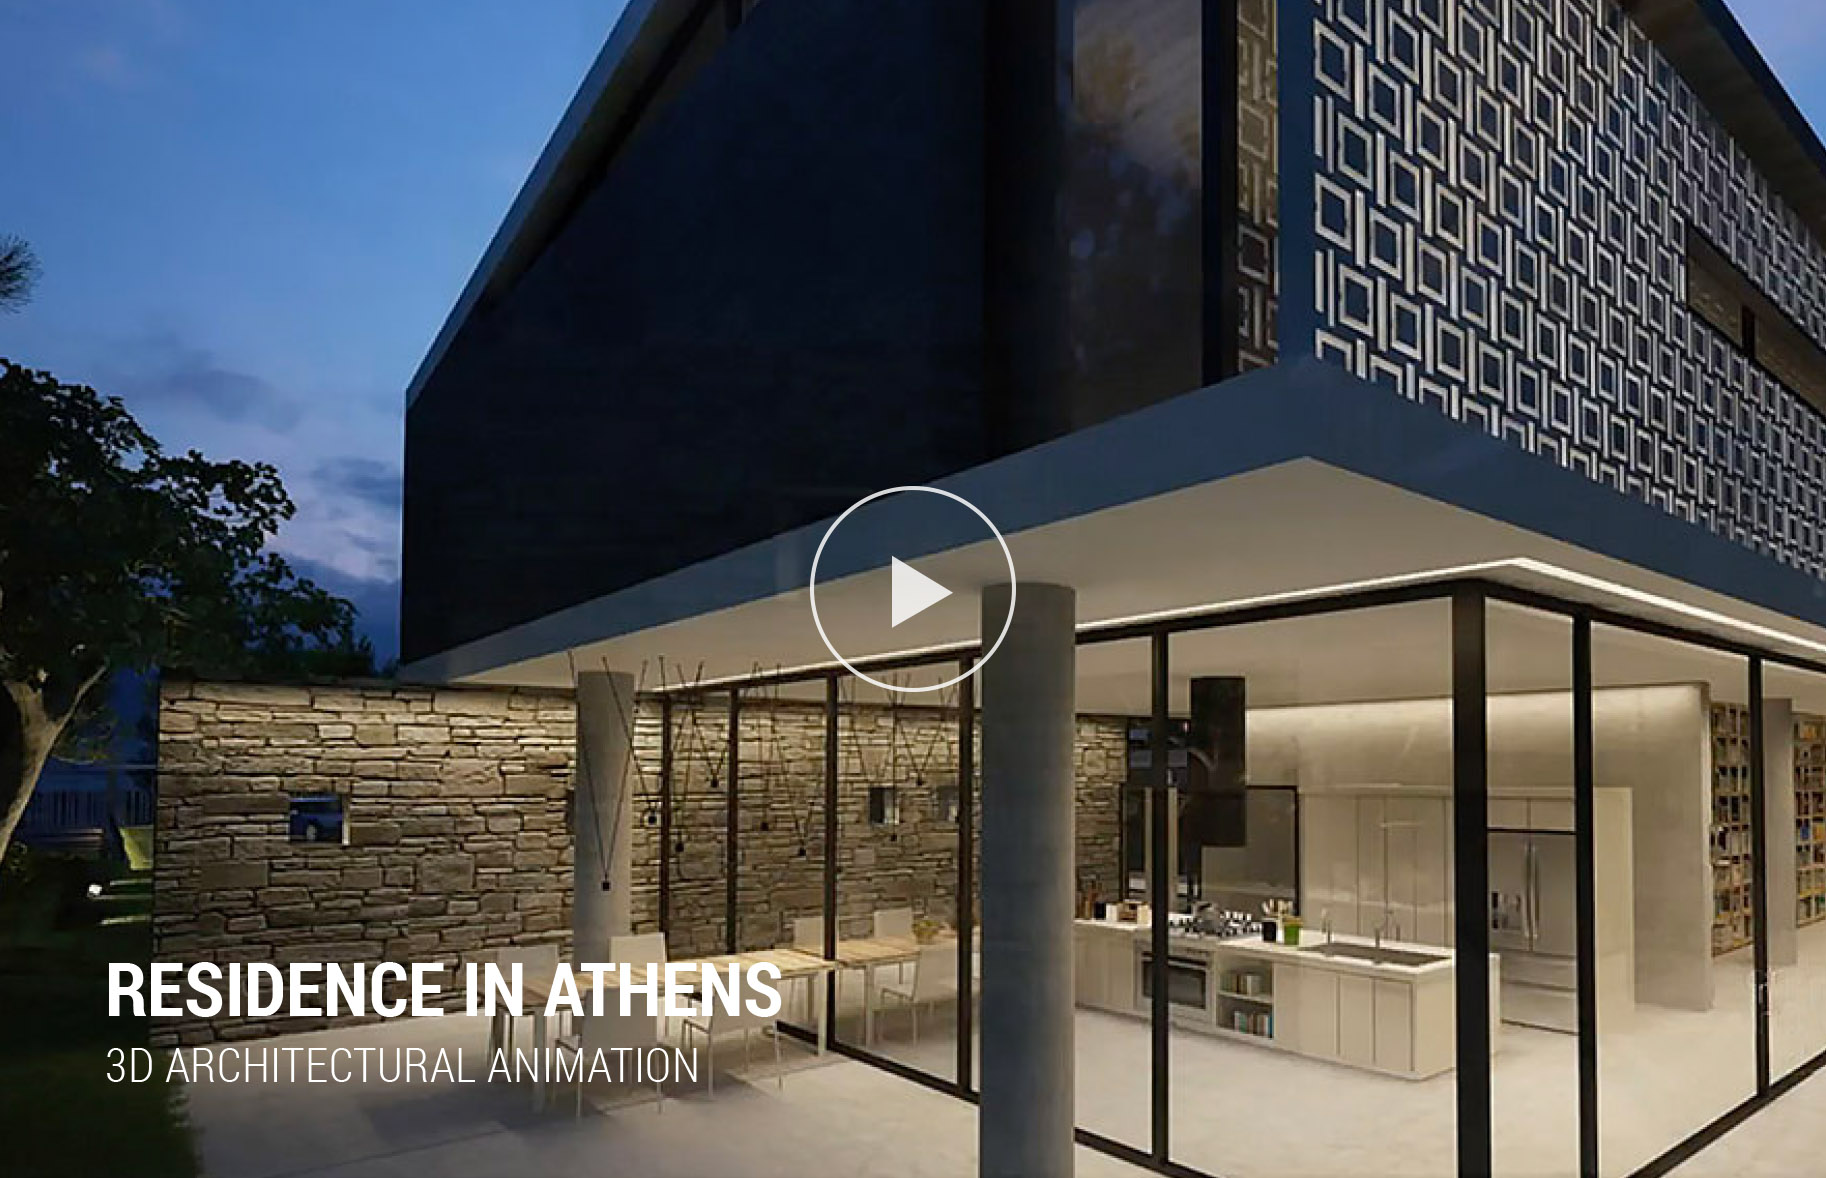 Schema Dimitra Chrona designer, creative director, architectural, 3D visualization, 3D Rendering, branding websites, digital, graphic design, interior design, real estate, luxury property, staging, museum, virtual, art, brochures, exhibitions, logotype, logo, Canada Quebec Montreal Athens Greece schema design residence athens video large.jpg